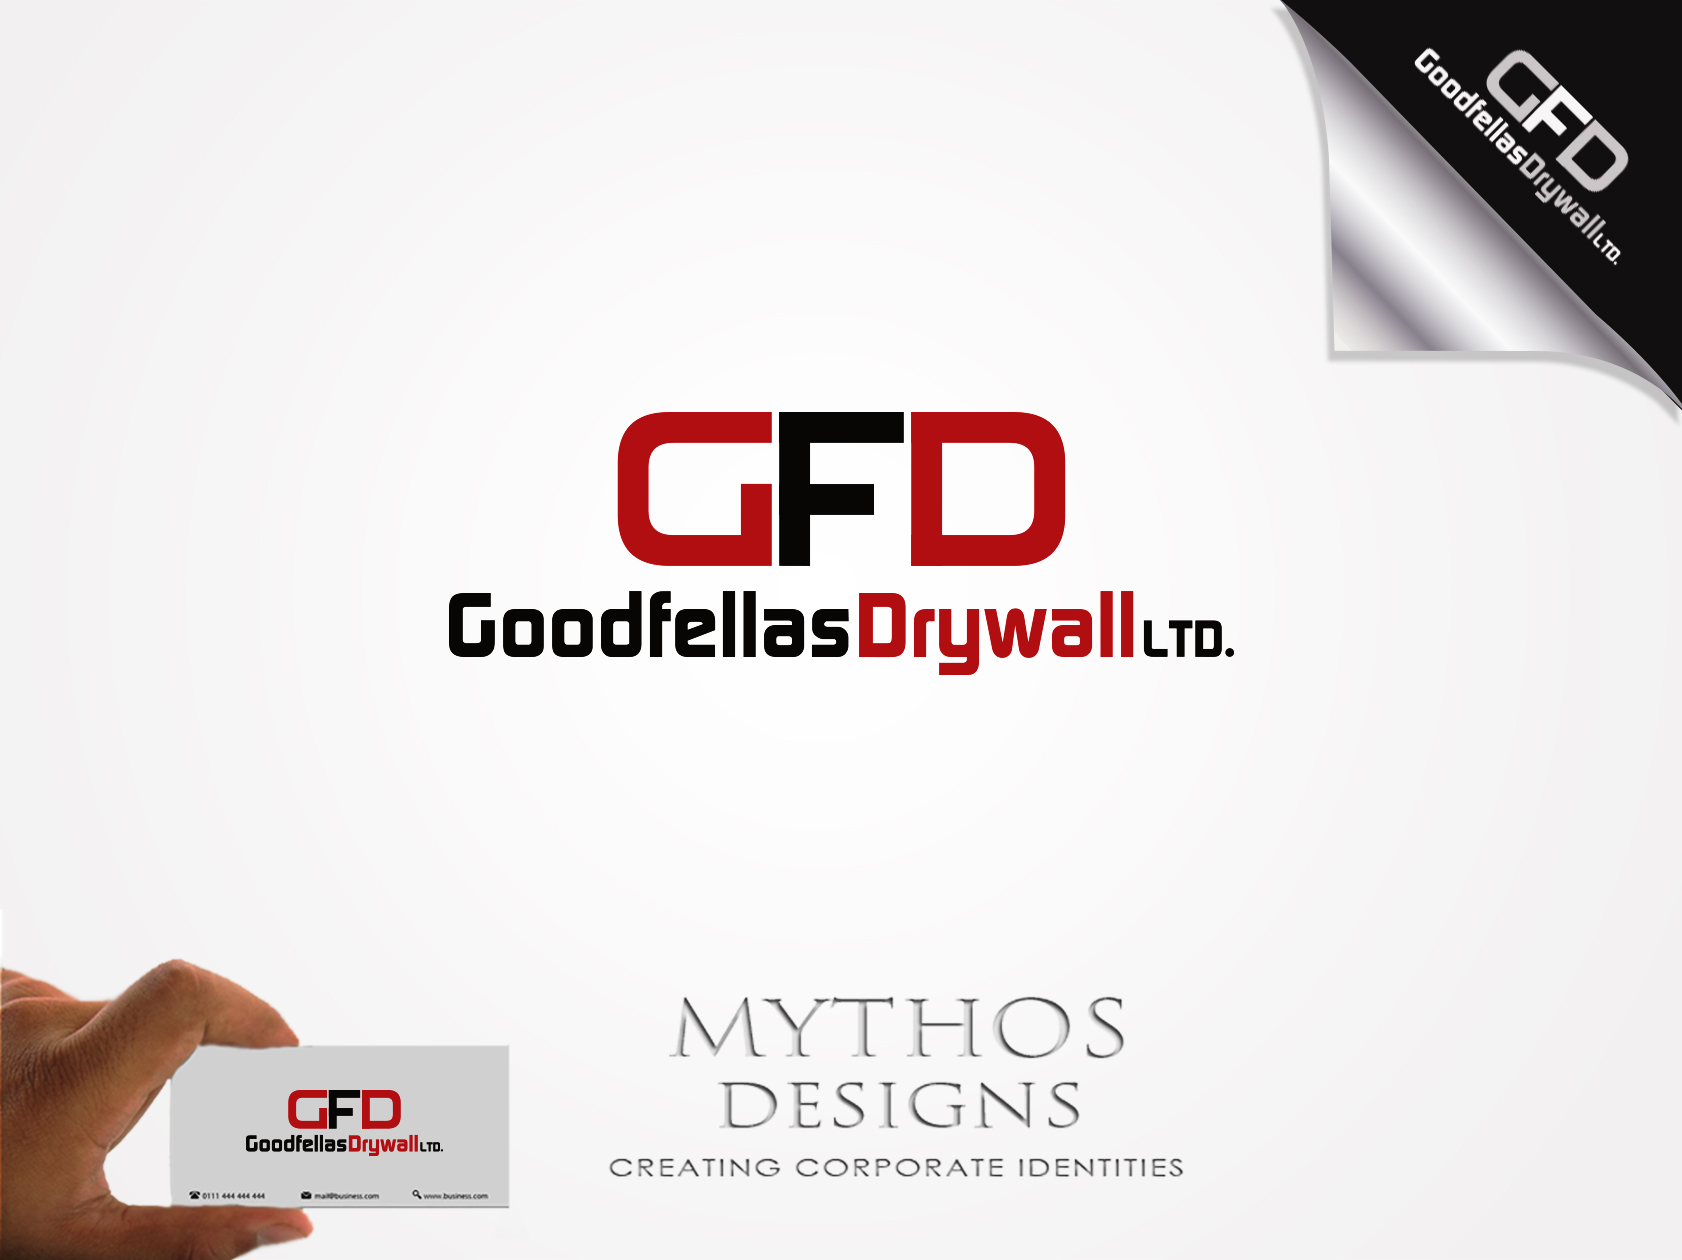 Logo Design by Mythos Designs - Entry No. 202 in the Logo Design Contest Creative Logo Design for Goodfellas Drywall.